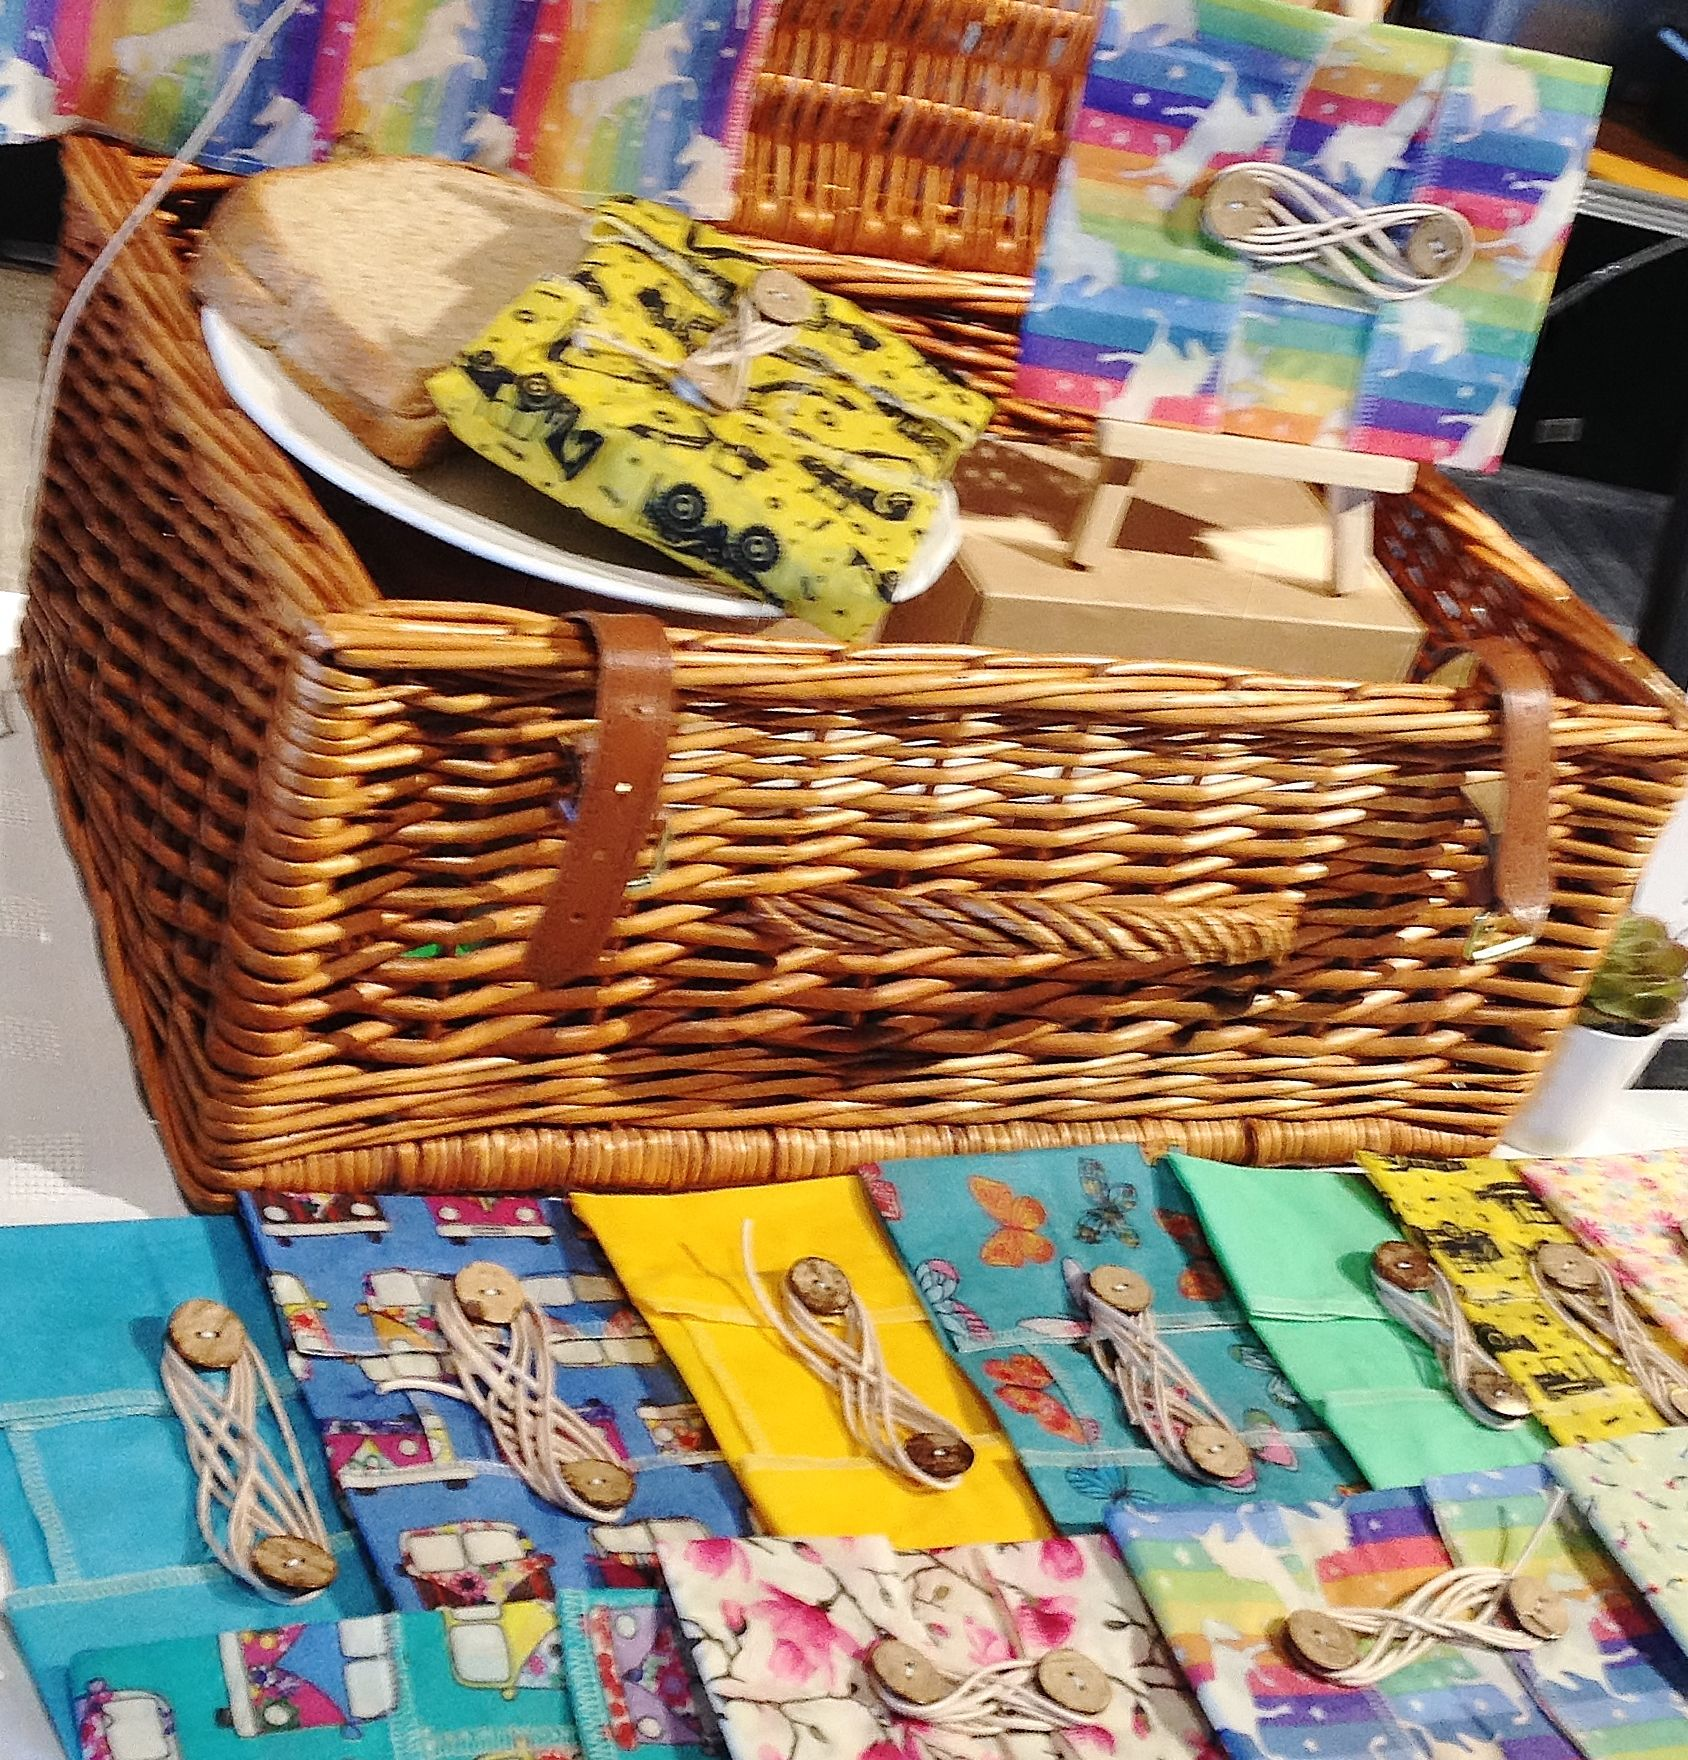 Hamper basket with various fabric waxed wraps from V-Eco Home